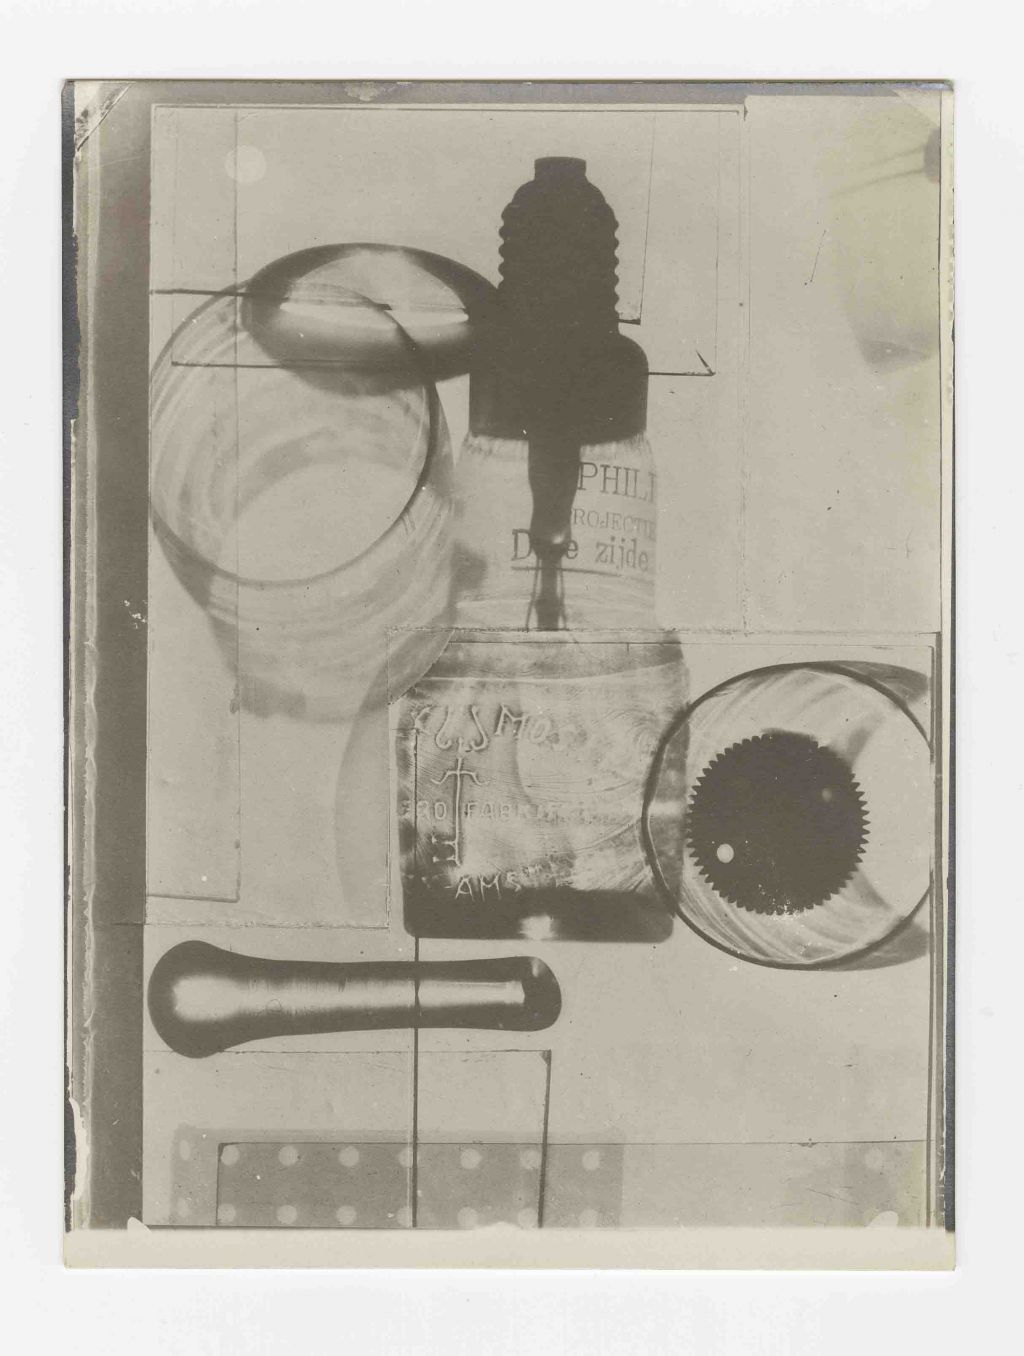 El Lissitzky and Vilmos Huszár, 4 Lampe Heliokonstruktion 125 Volt, Photogram 120 x 90 mm, [1923]. Collection Het Nieuwe Instituut.